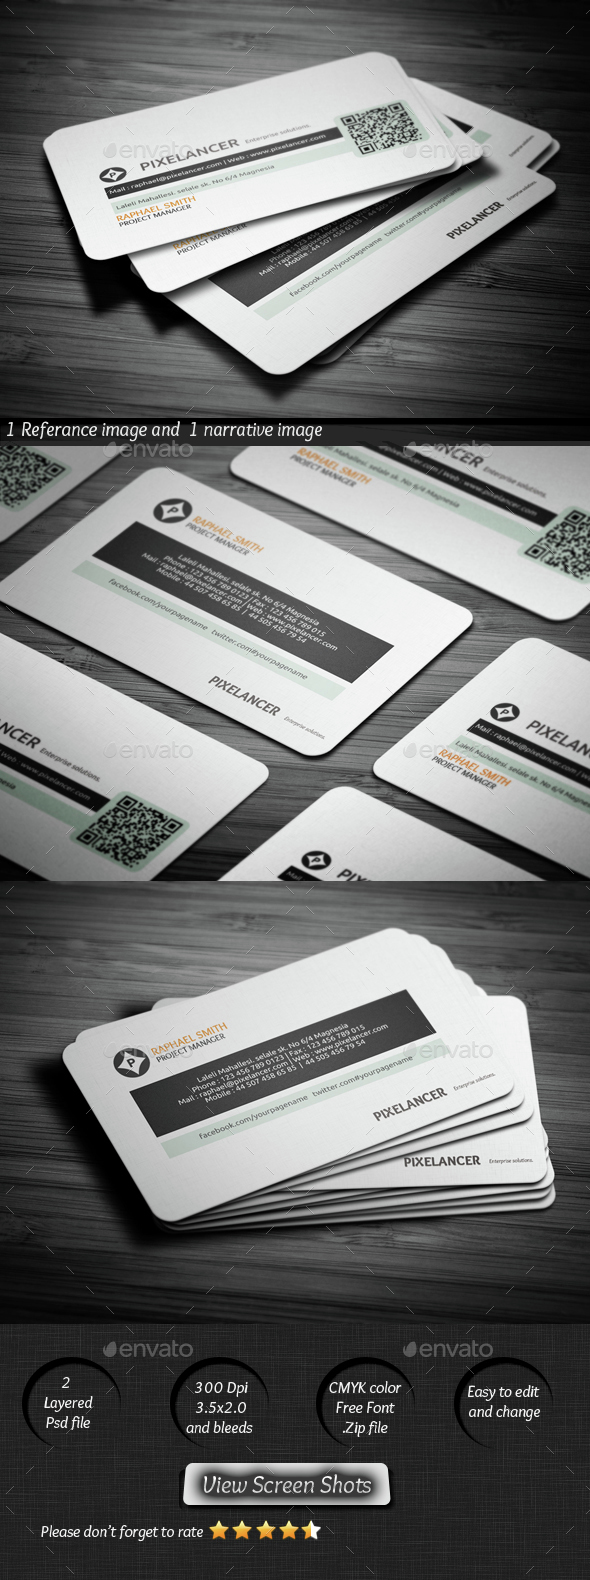 Pixelancer Business Card - Corporate Business Cards